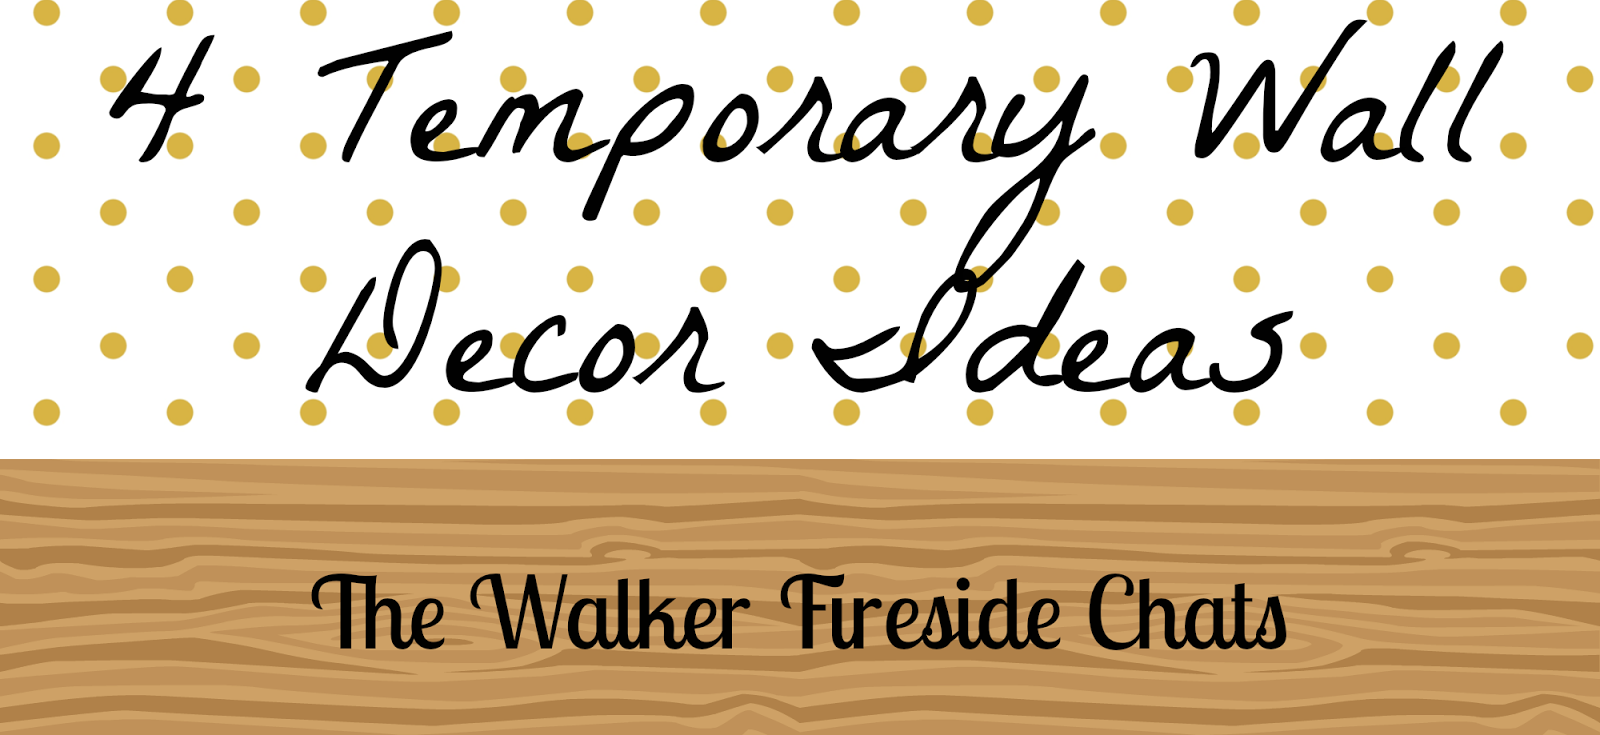 The Walker Fireside Chats: 4 Temporary Wall Decor Ideas